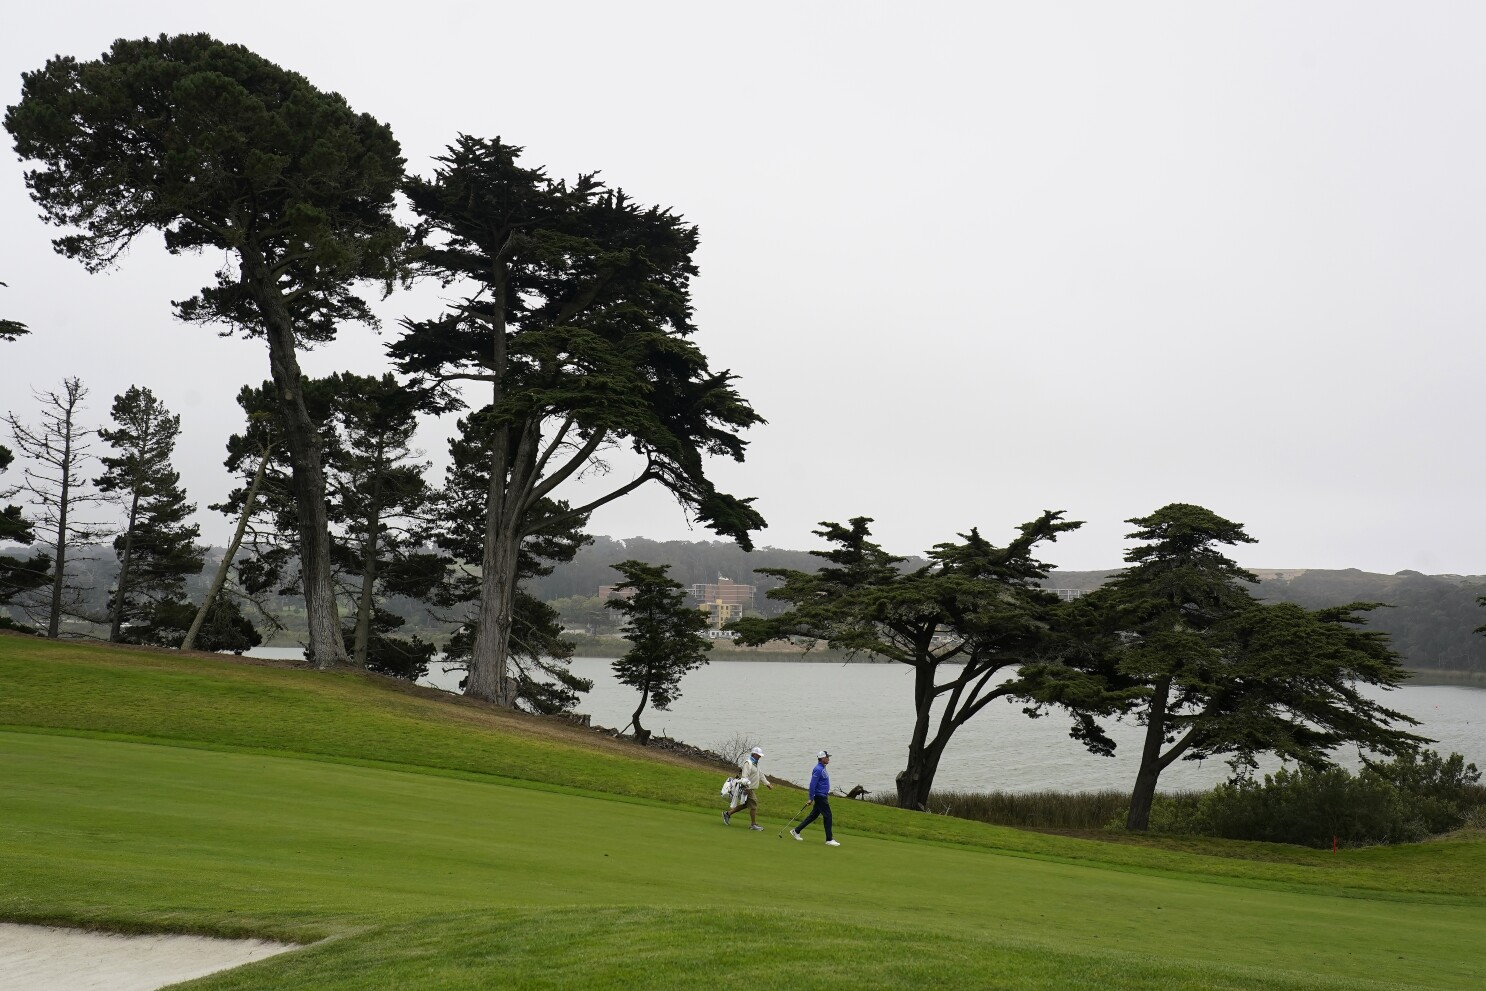 Column Lovable Underdog At Pga Championship Not A Player But The Course The San Diego Union Tribune